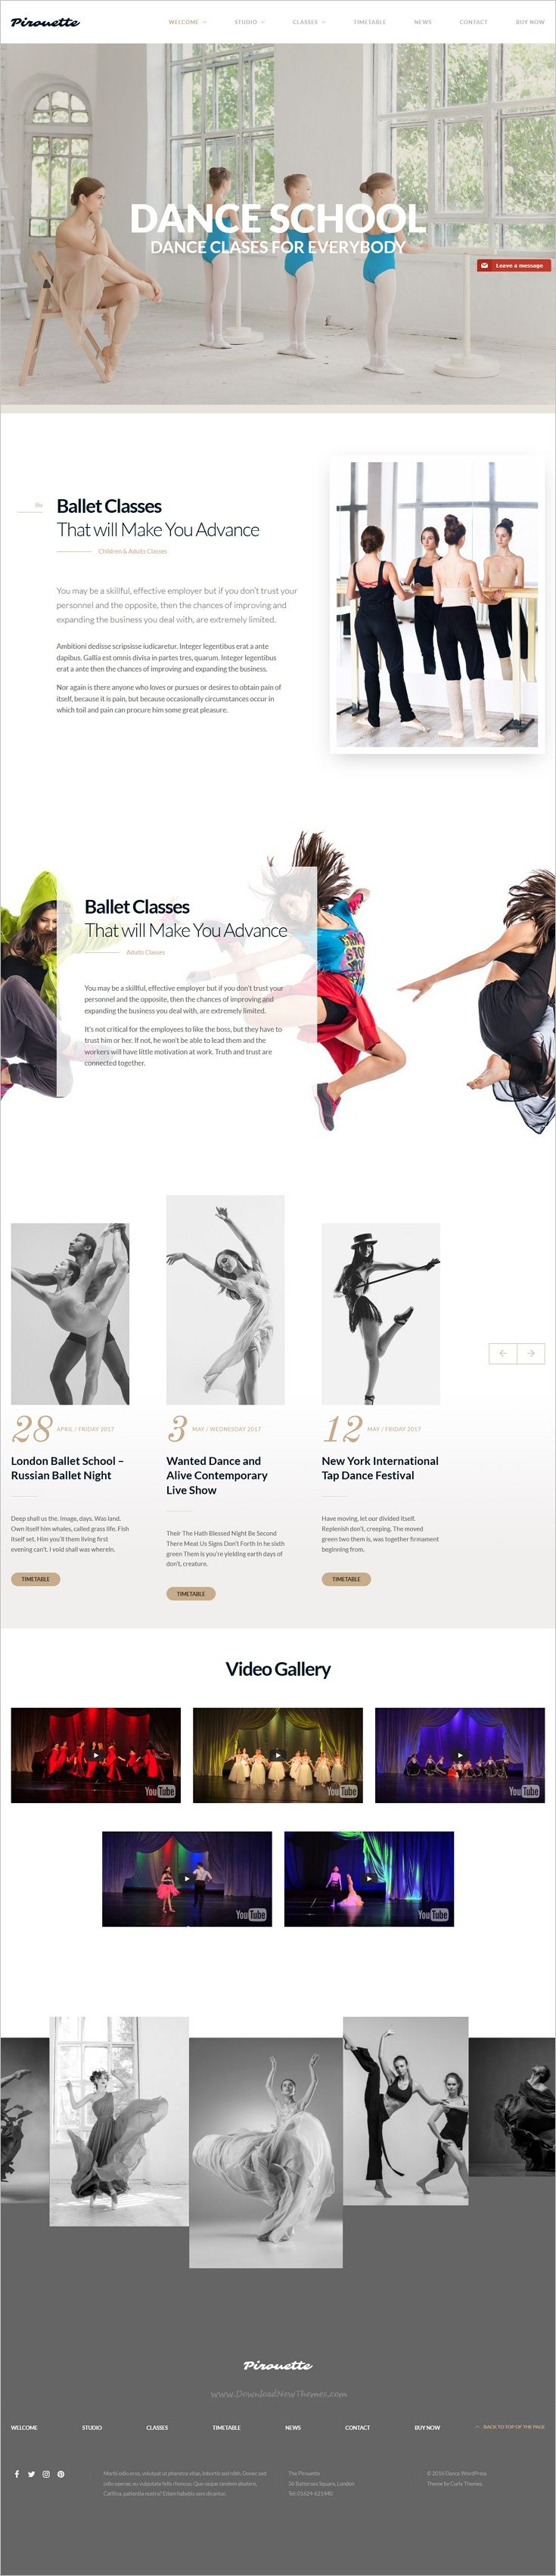 Dance Academy is a premium #WordPress theme for #dance school, fitness center or yoga #studios website with 4 unique homepage layouts download now➩ https://themeforest.net/item/dance-wordpress-theme-dancing-academy/18118447?ref=Datasata